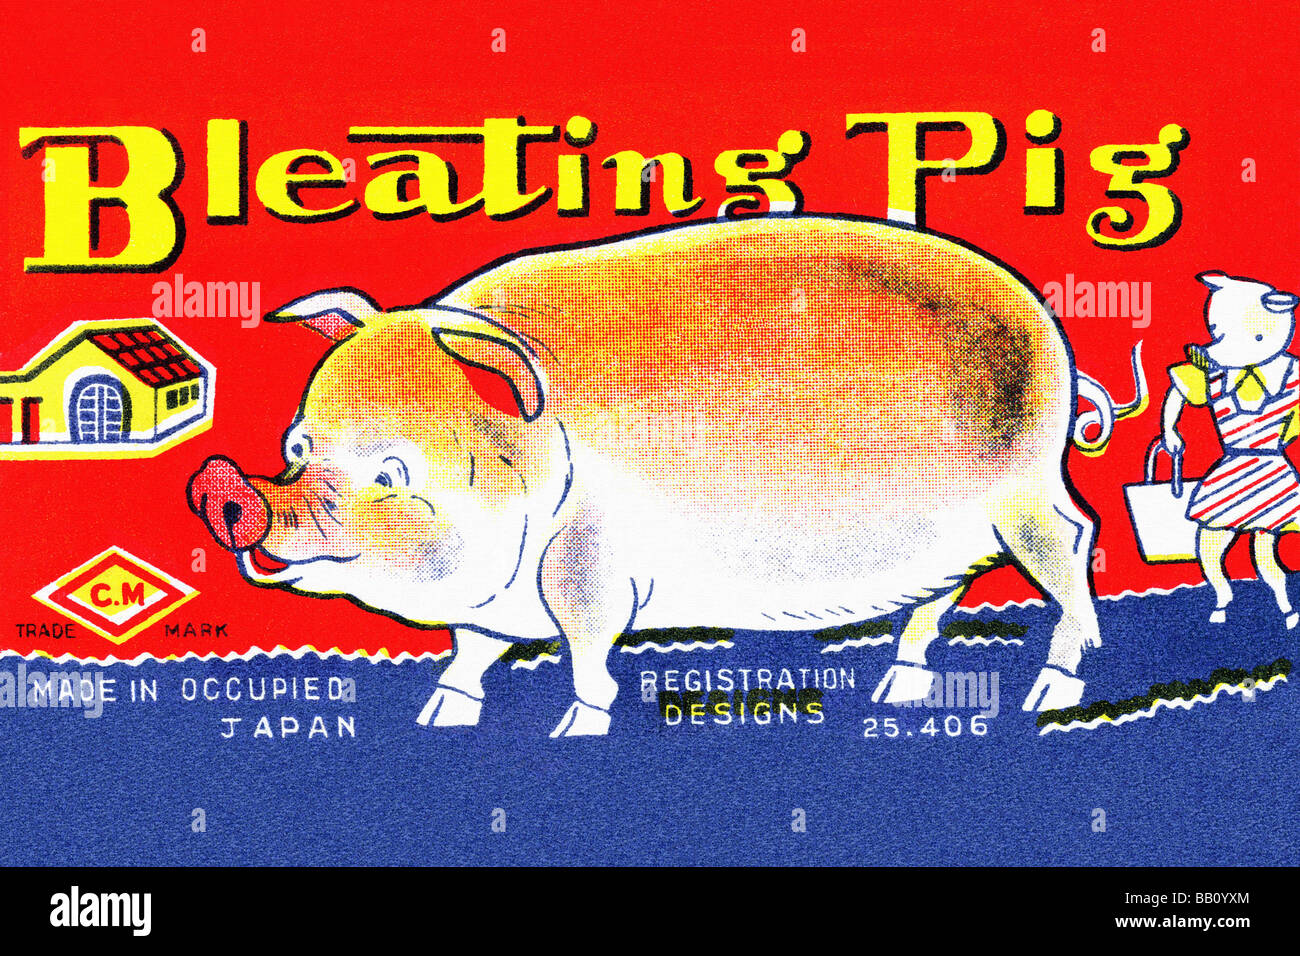 Bleating Pig - Stock Image